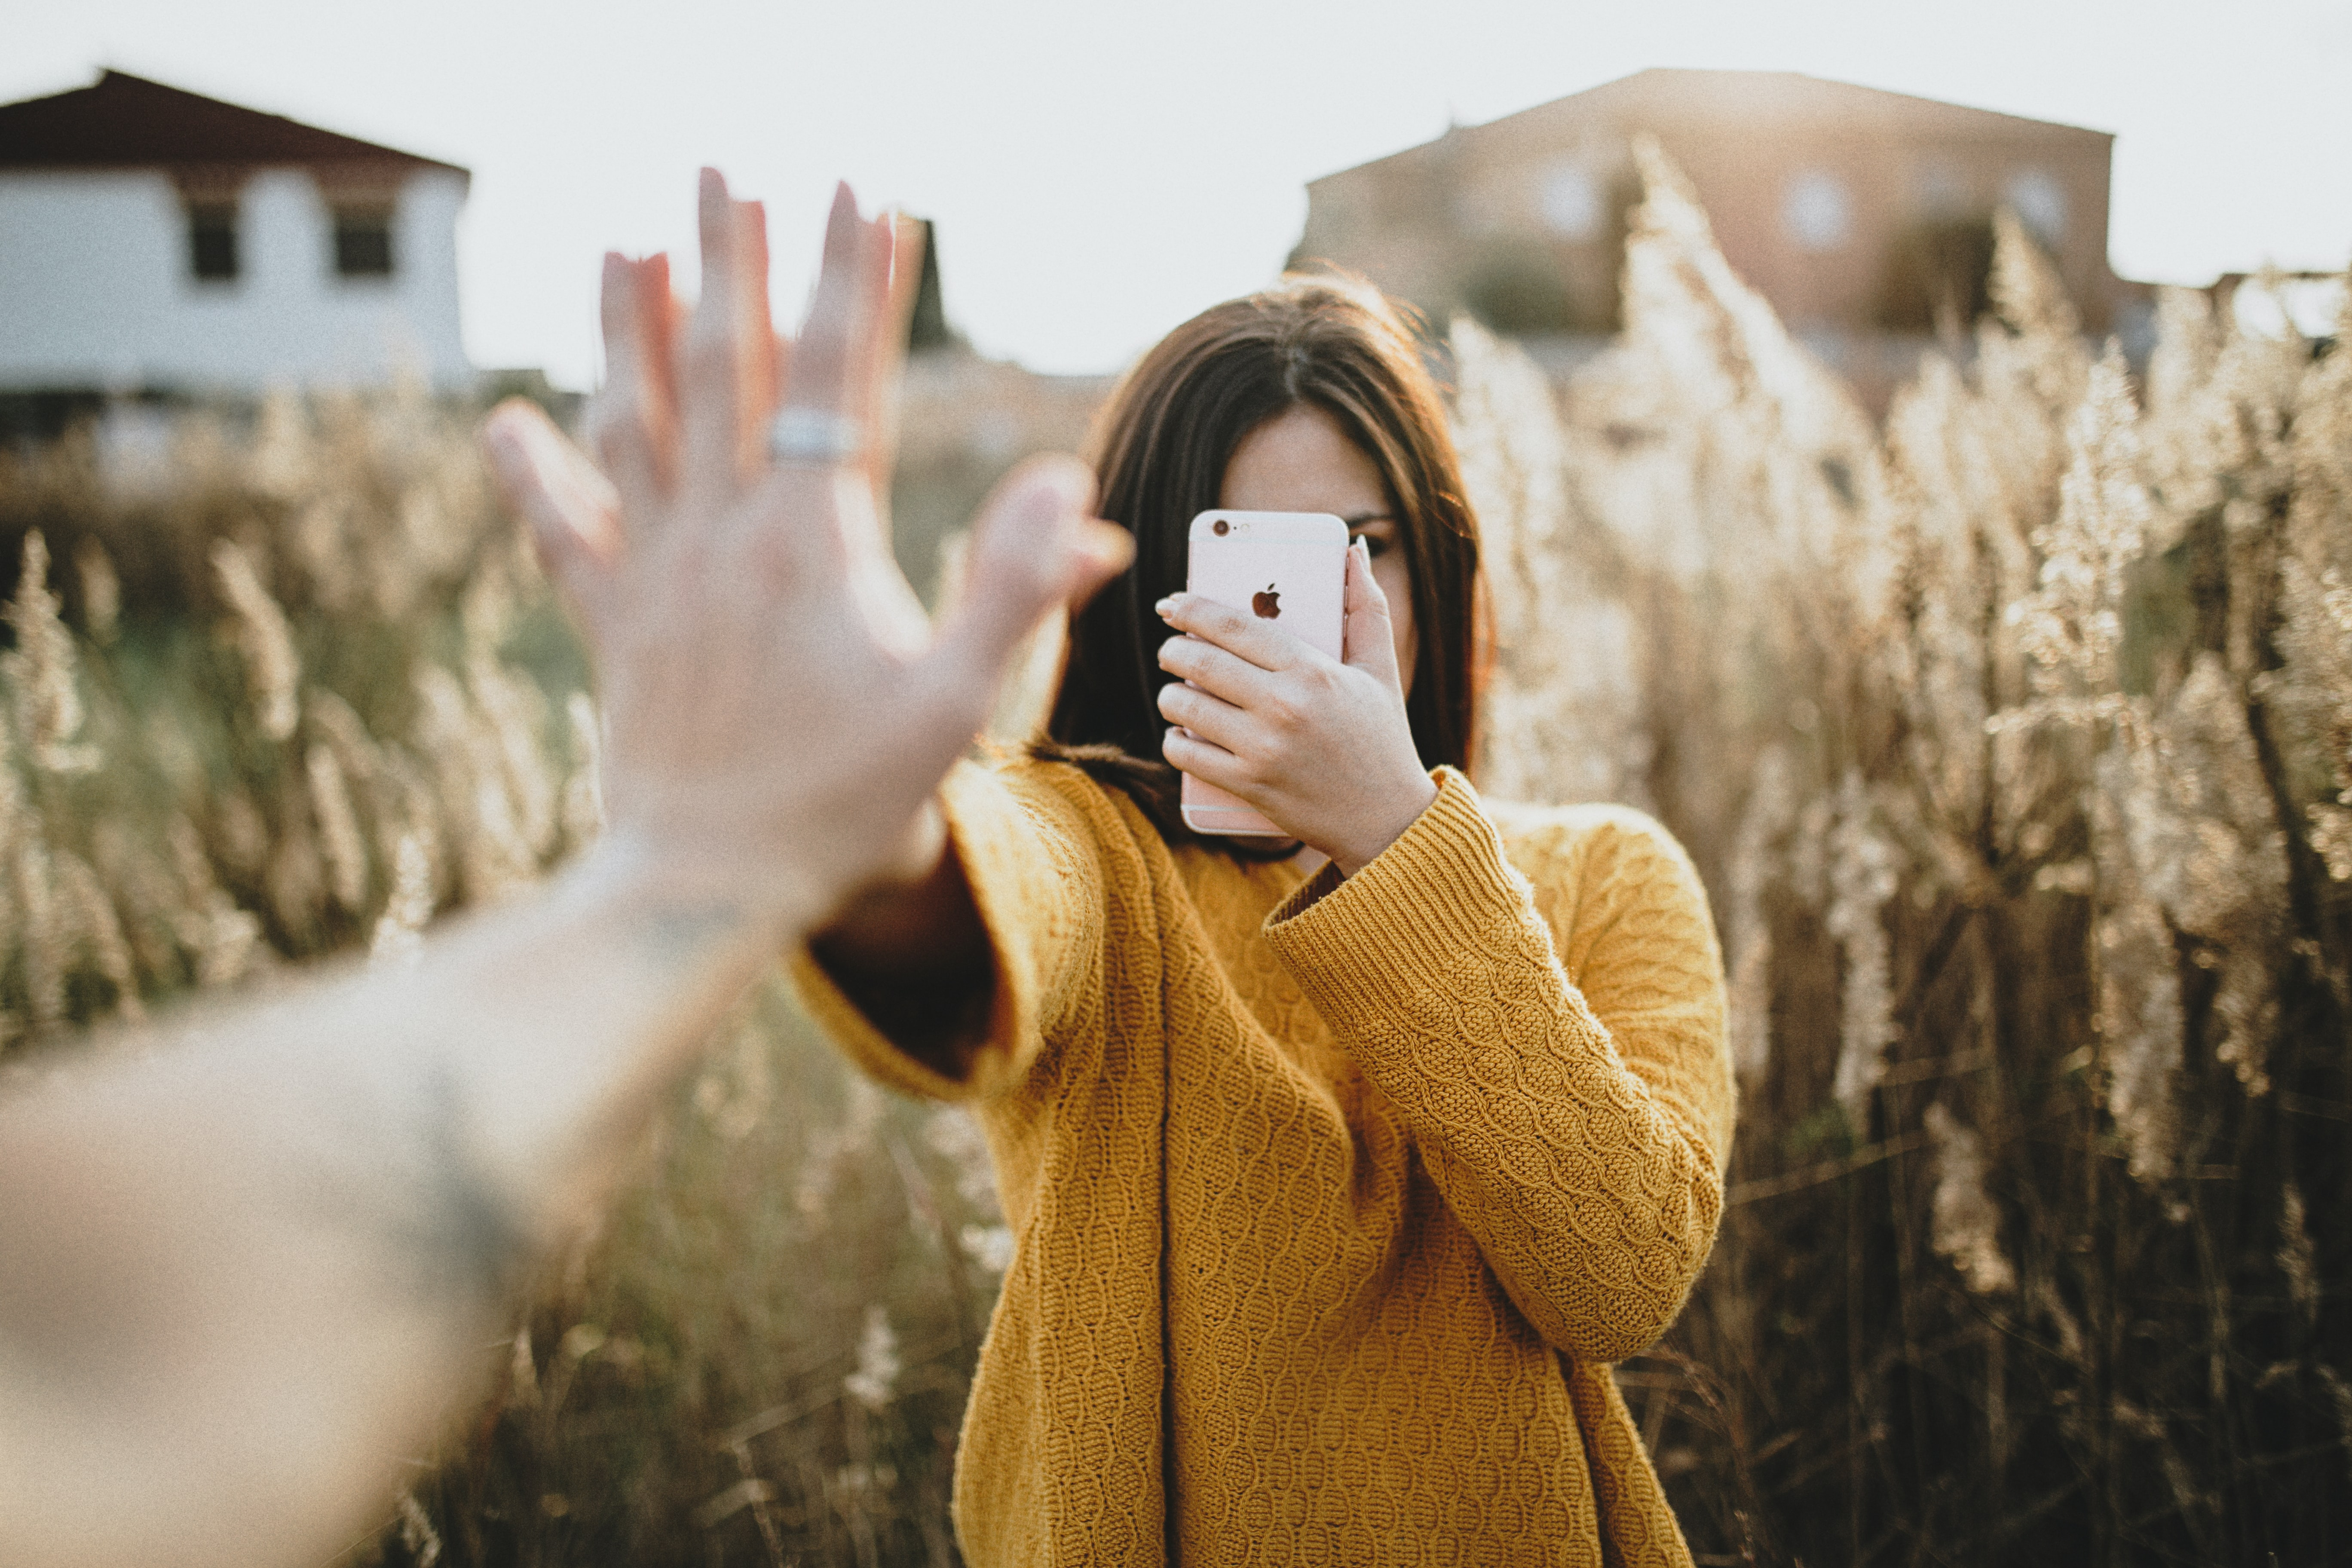 woman holding iPhone and touching other person's jhand